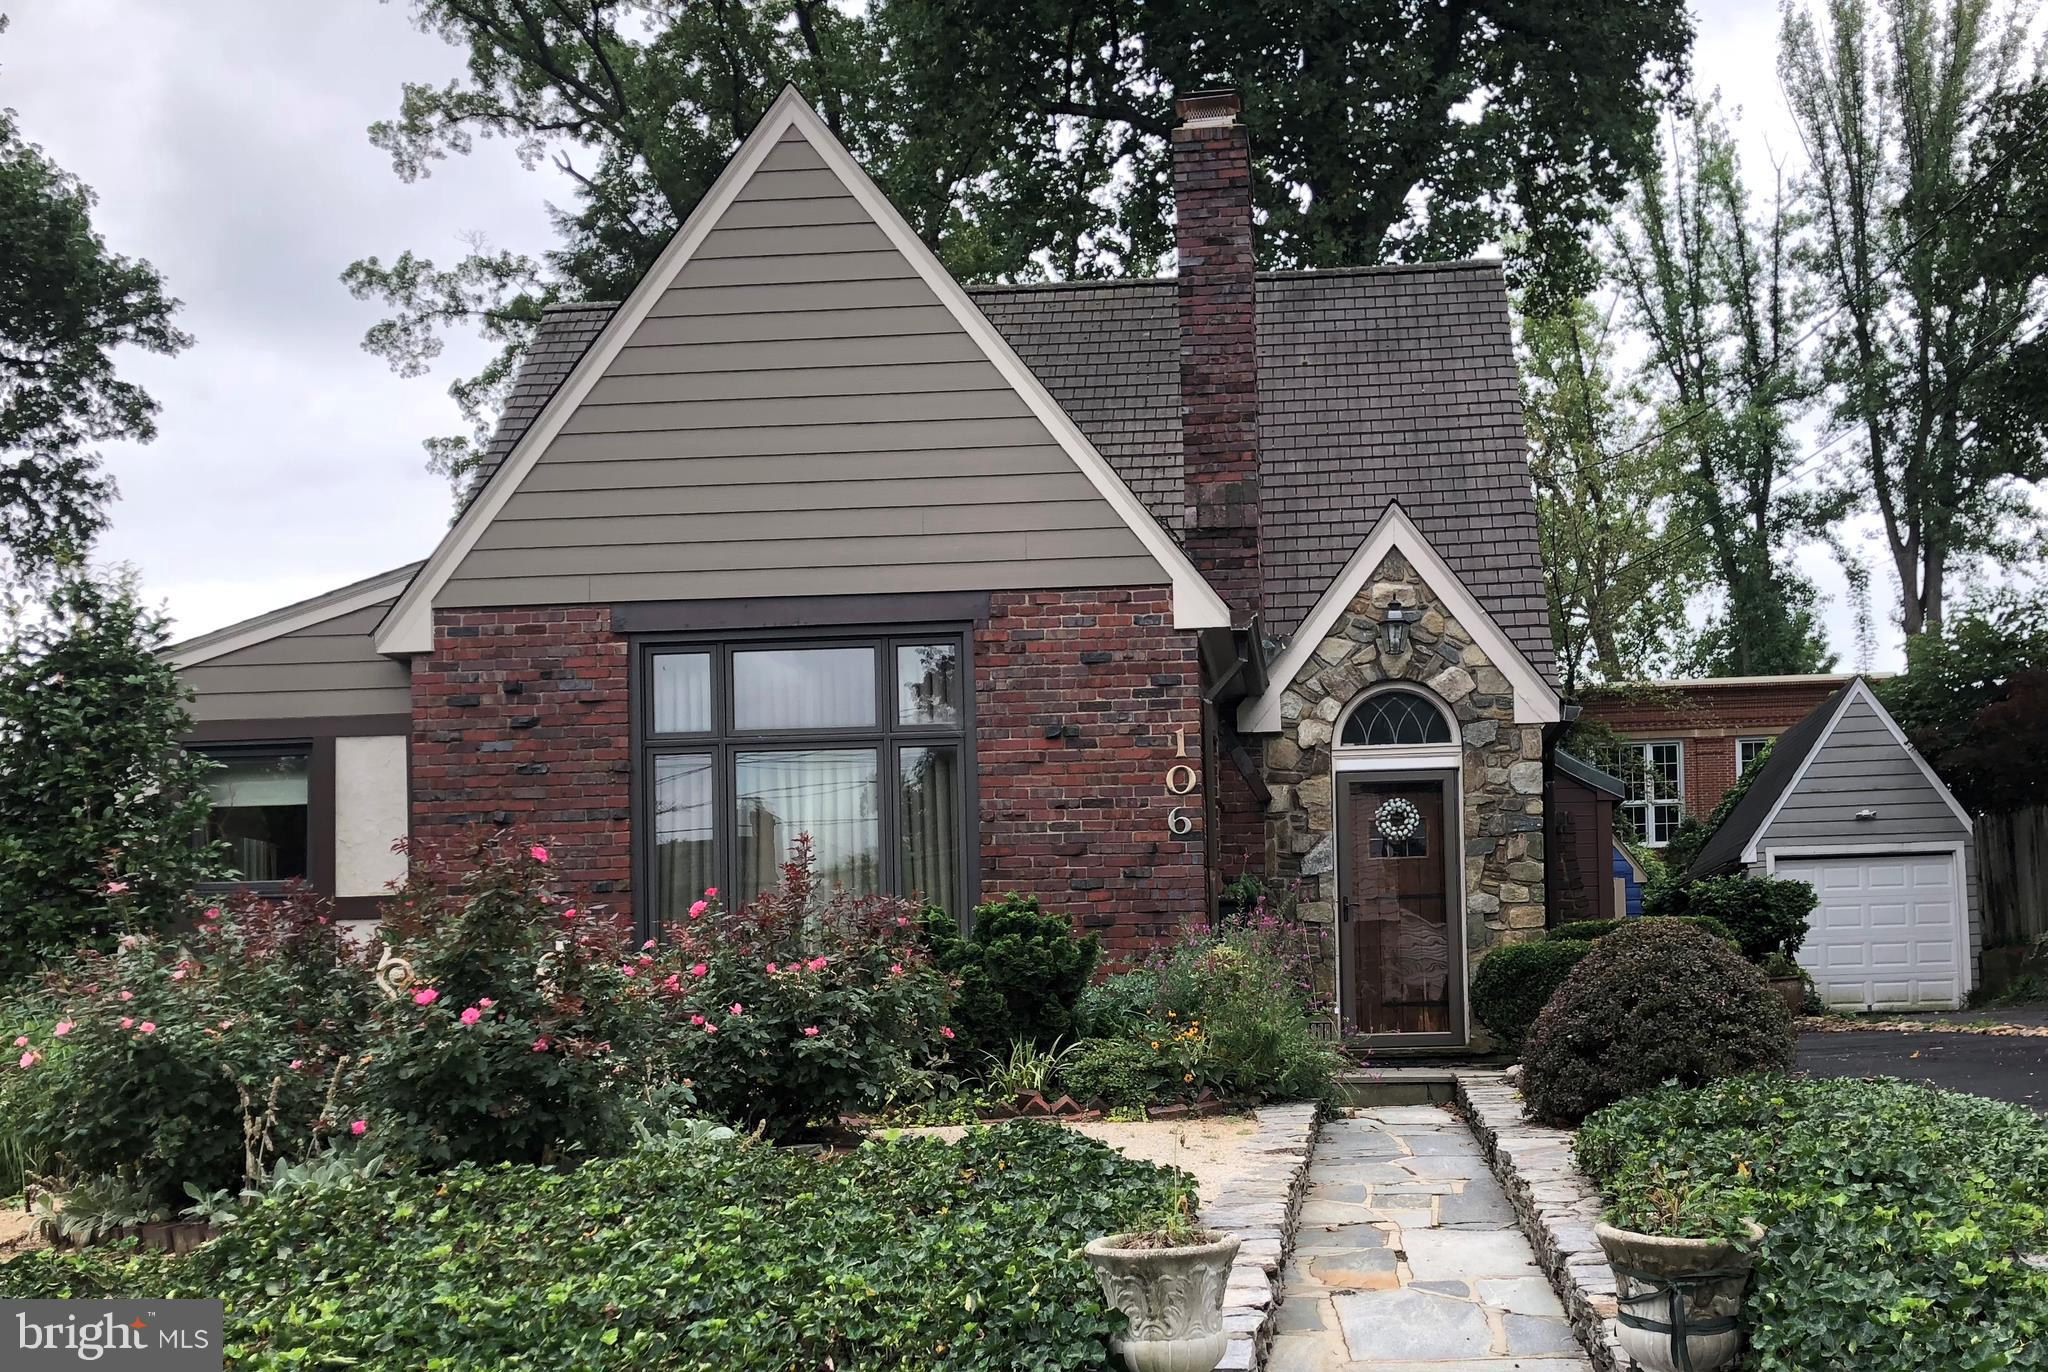 One of a Kind!! Tudor style brick home w/2-story  Great Room, Sunroom, kit, Sep DR leading to gorgeous garden!  Bedroom on main level.  Second floor has MBR and BR #3.  Updated Full Baths on main level and second level.  Wood floors throughout.  Separate garage plus driveway for 4 more cars!!!  Verbal conversation with City says room for 800SF addition.     Single garage + park 4 cars in driveway.